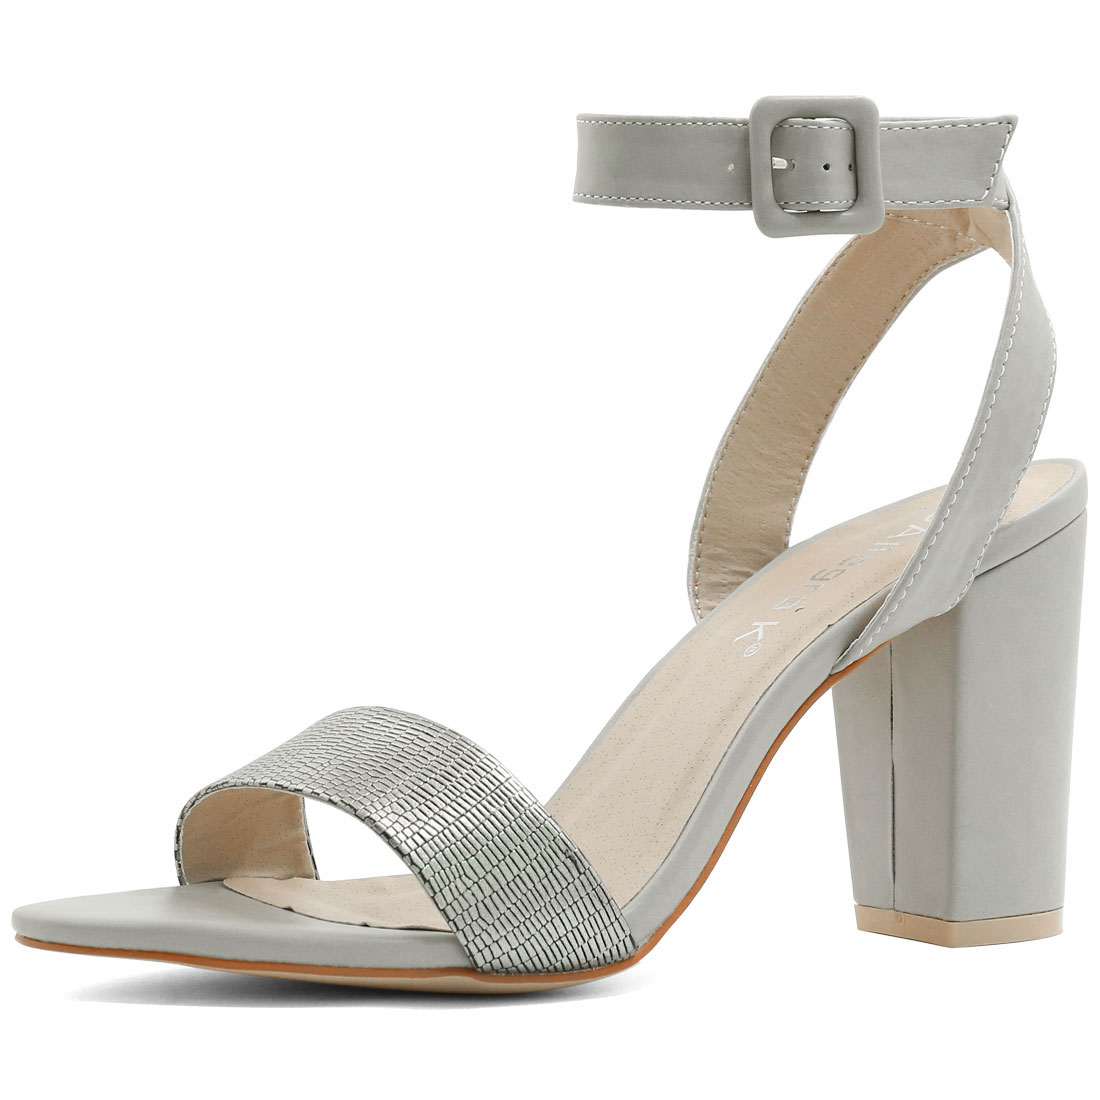 Woman Textured Vamp Chunky Heel Ankle Strap Sandals Silver US 7